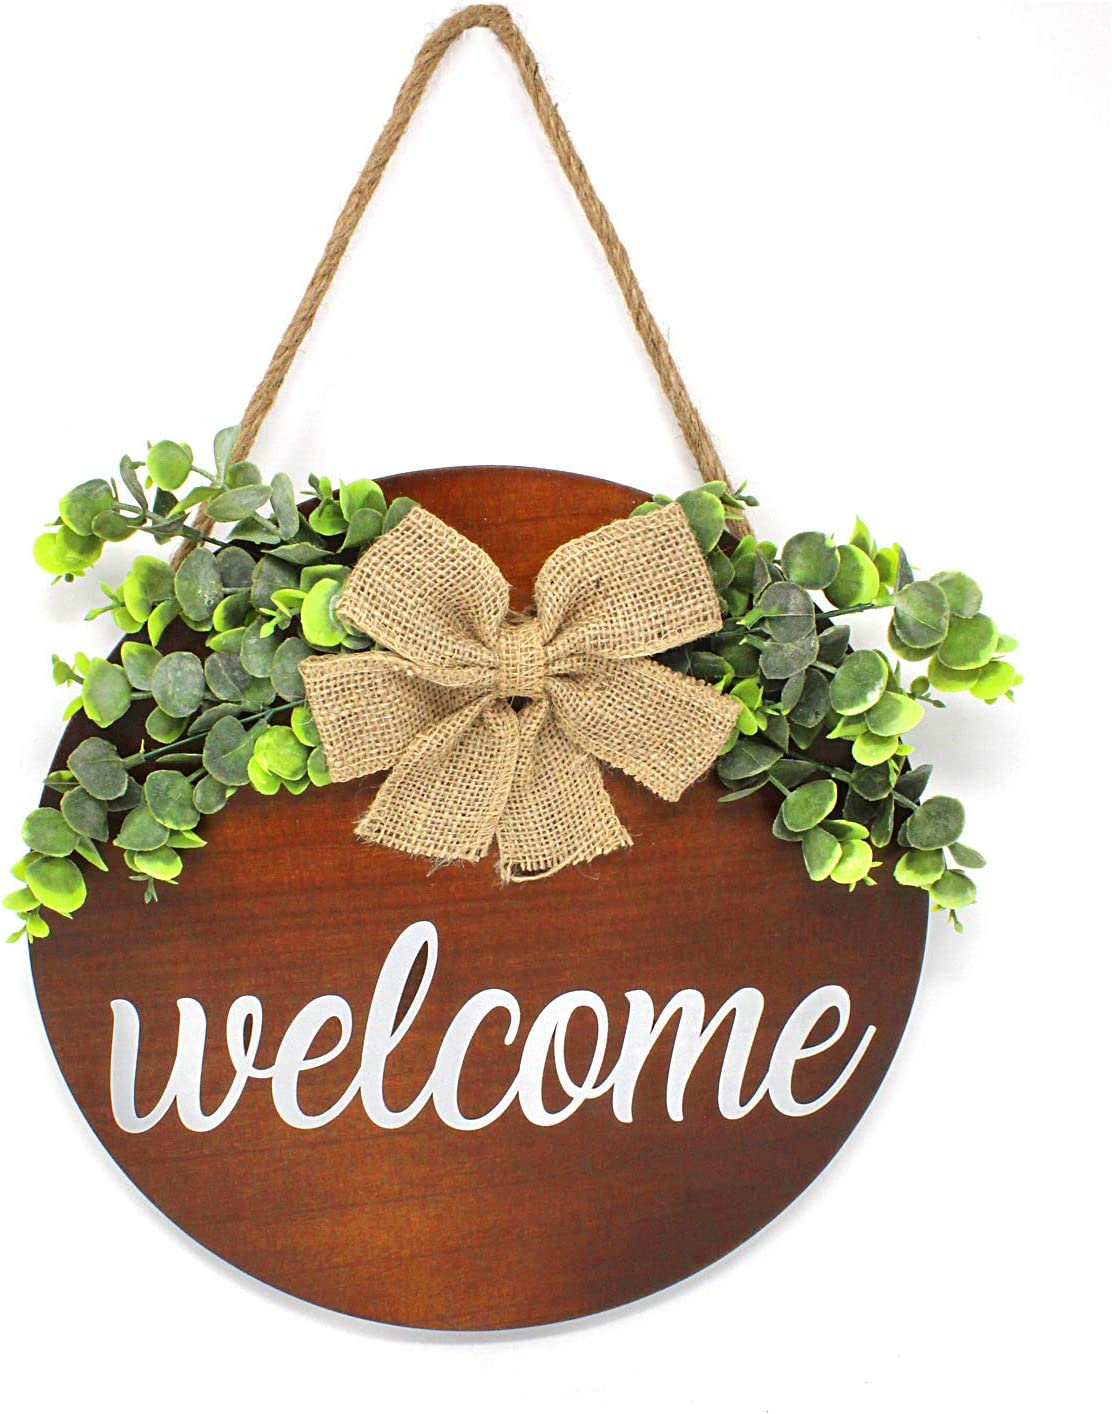 SmithFarmCo Welcome Wreaths for Front Door, Front Door Decor, Welcome Sign for Front Door , Porch Decor, Farmhouse Fall Decor, Rustic Wooden Door Hanger, Fall Decor For Porch (Brown)